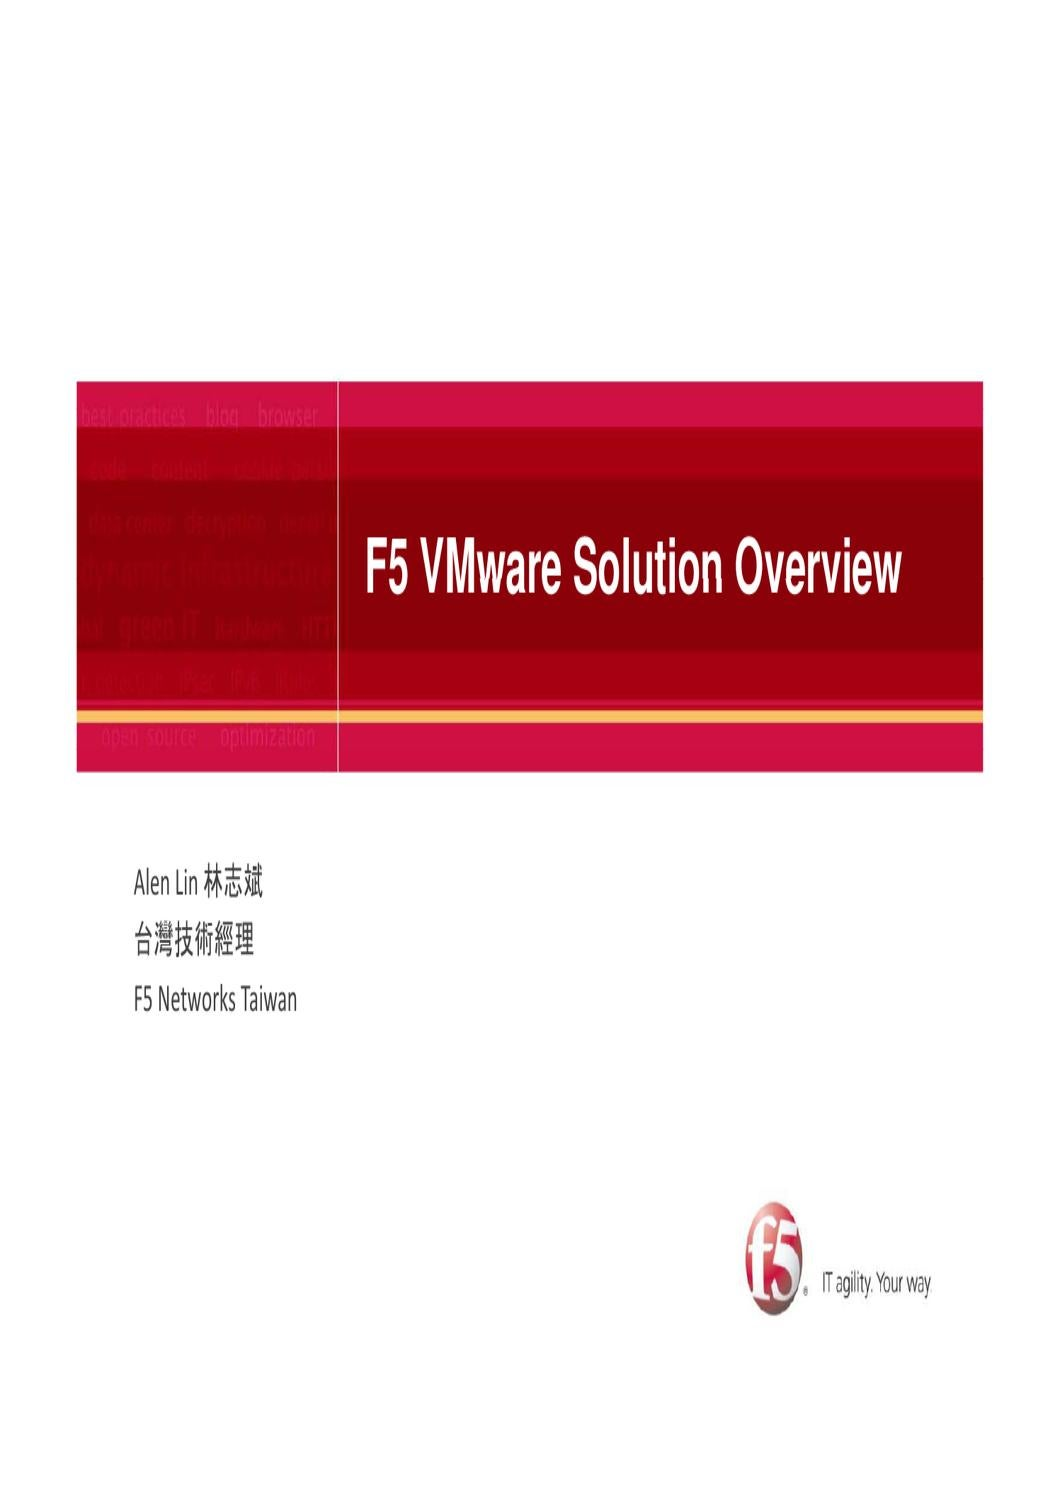 2011 05 24 F5 Solution Day - F5 with VMware Solution by